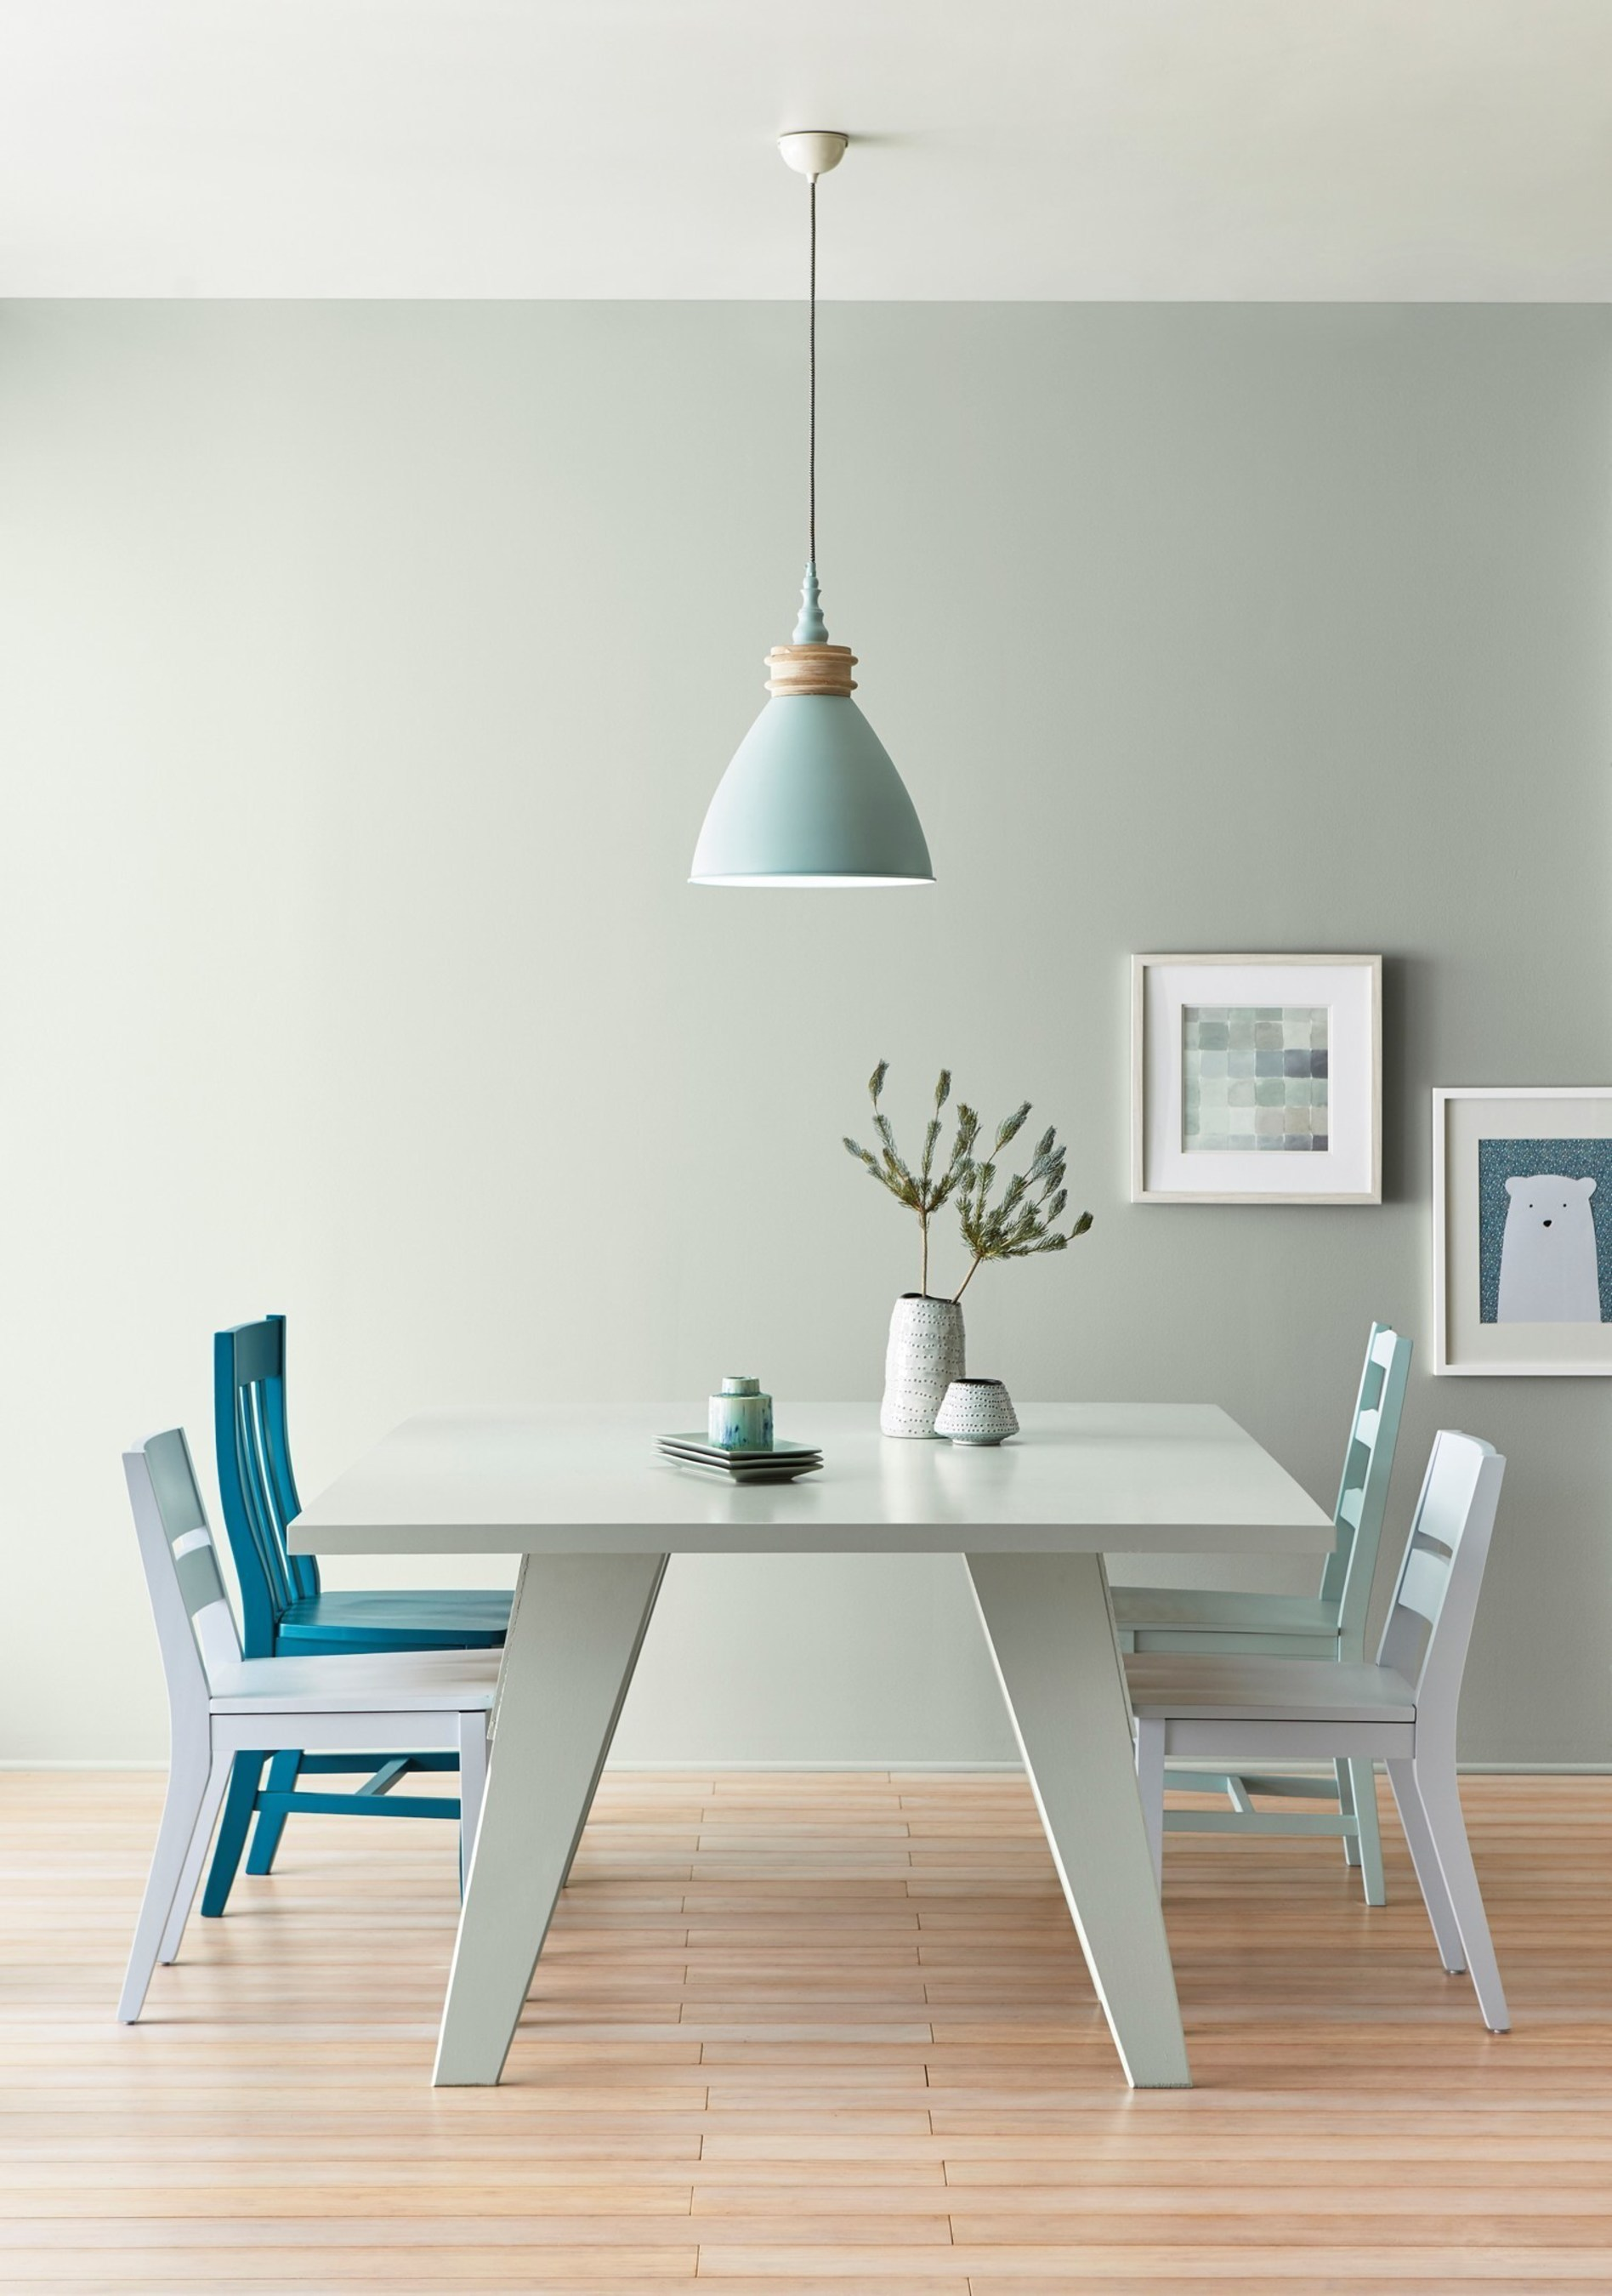 """Lowe's: 5002-1B Smoke Infusion/ Ace: VR110C Rock Solid/ Independent Retailers: V140-3 Rock Solid/  Soft silver sage enjoys resurgence as the movement to de-clutter and pare down is in play. The hue is versatile, reliable and reimagined for living simply, yet satisfied. """"Sage green and silvery gray blend together in one of the most versatile and beautiful neutrals - perfect for today's popular warm wood floors,"""" said Kim."""